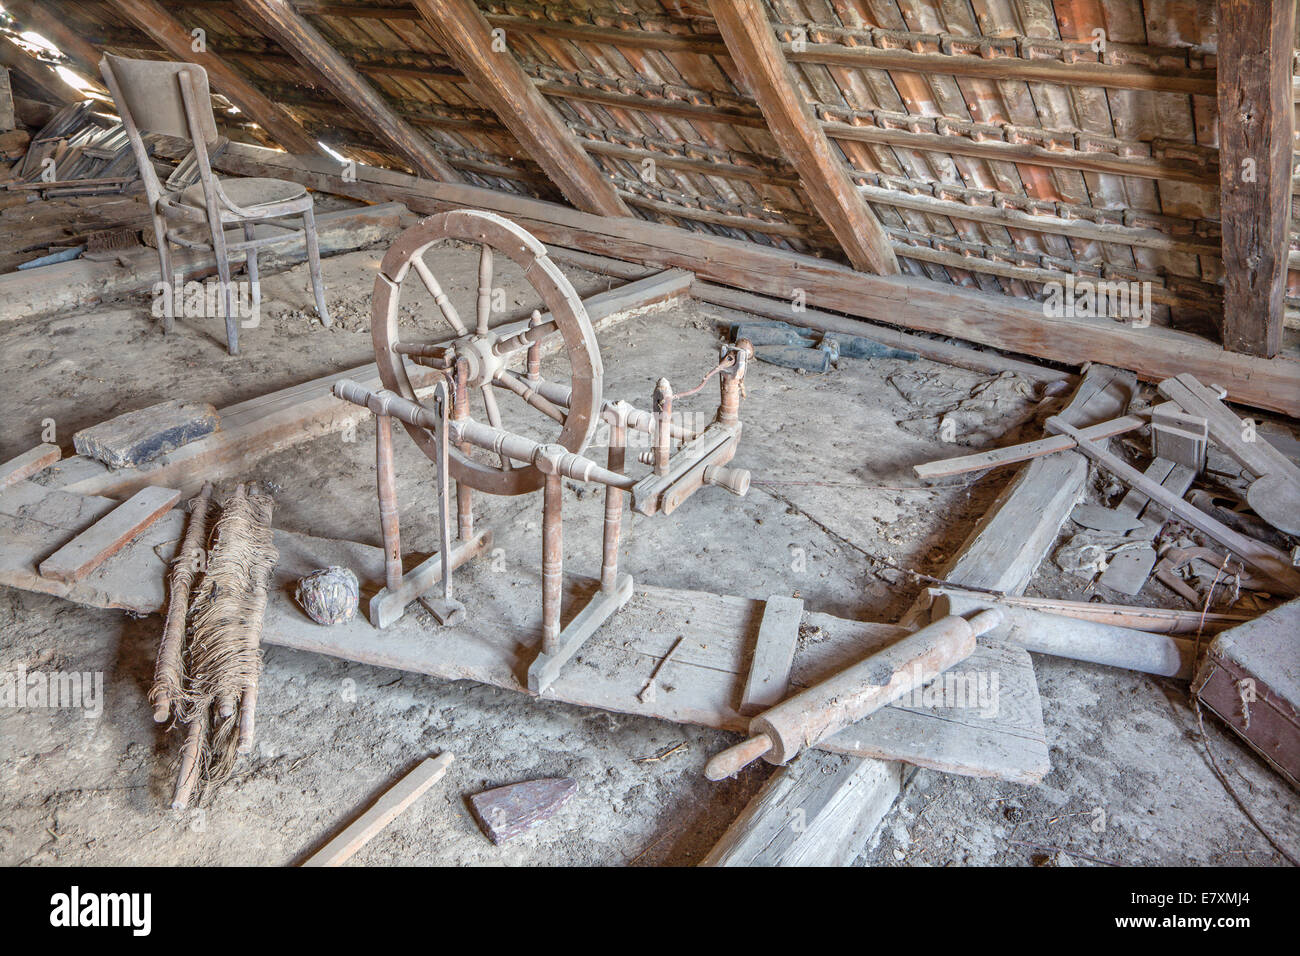 old barrel organ on the billet of village house in Slovakia - Stock Image